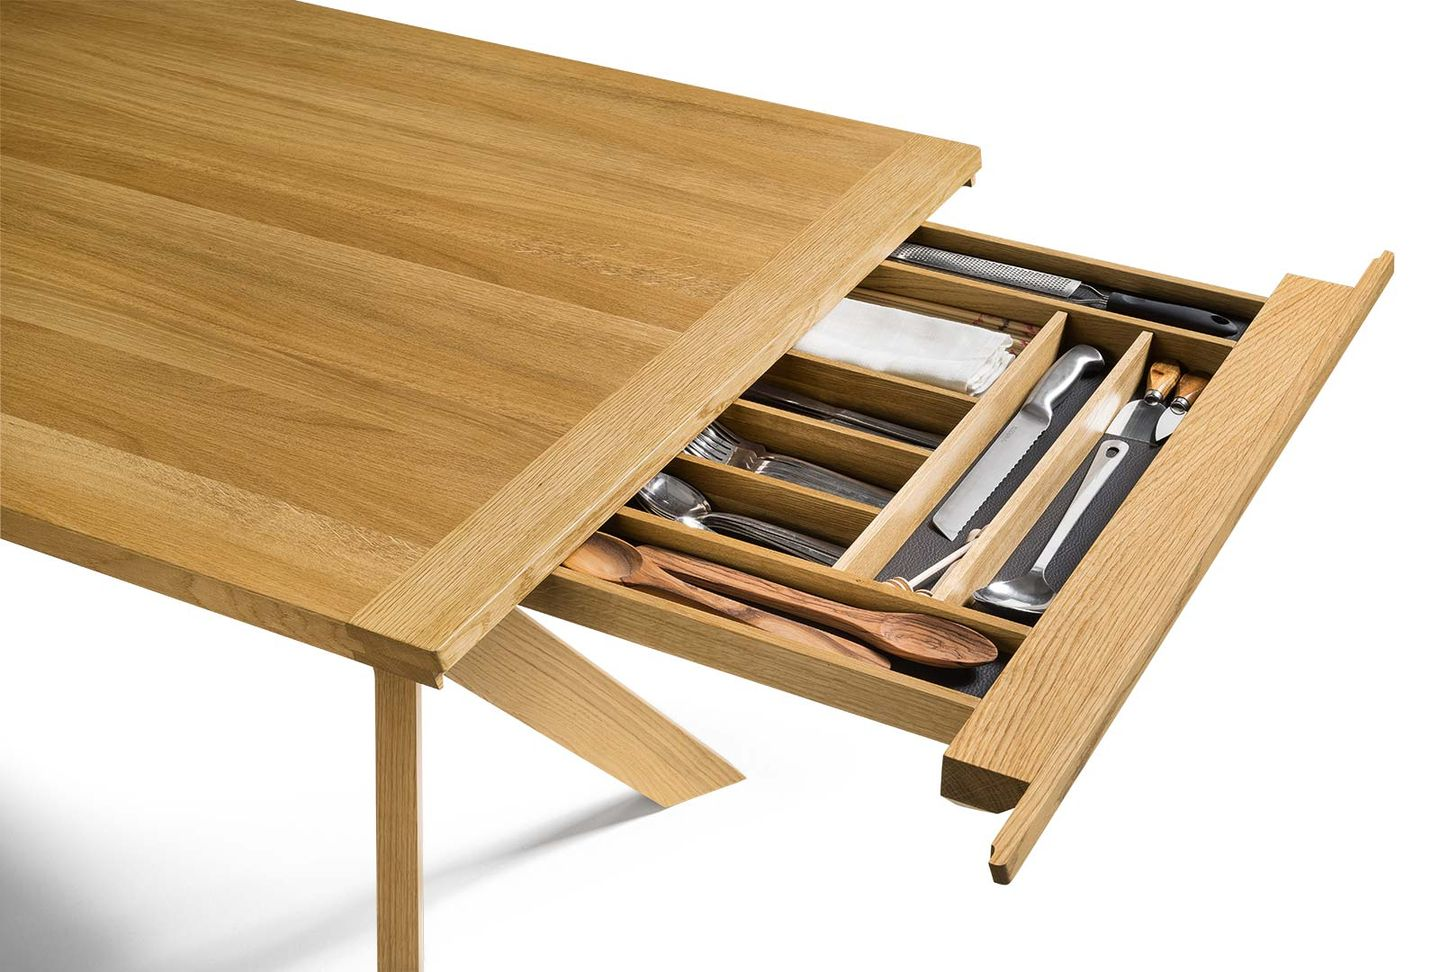 yps extendable table made of solid wood with cutlery drawer